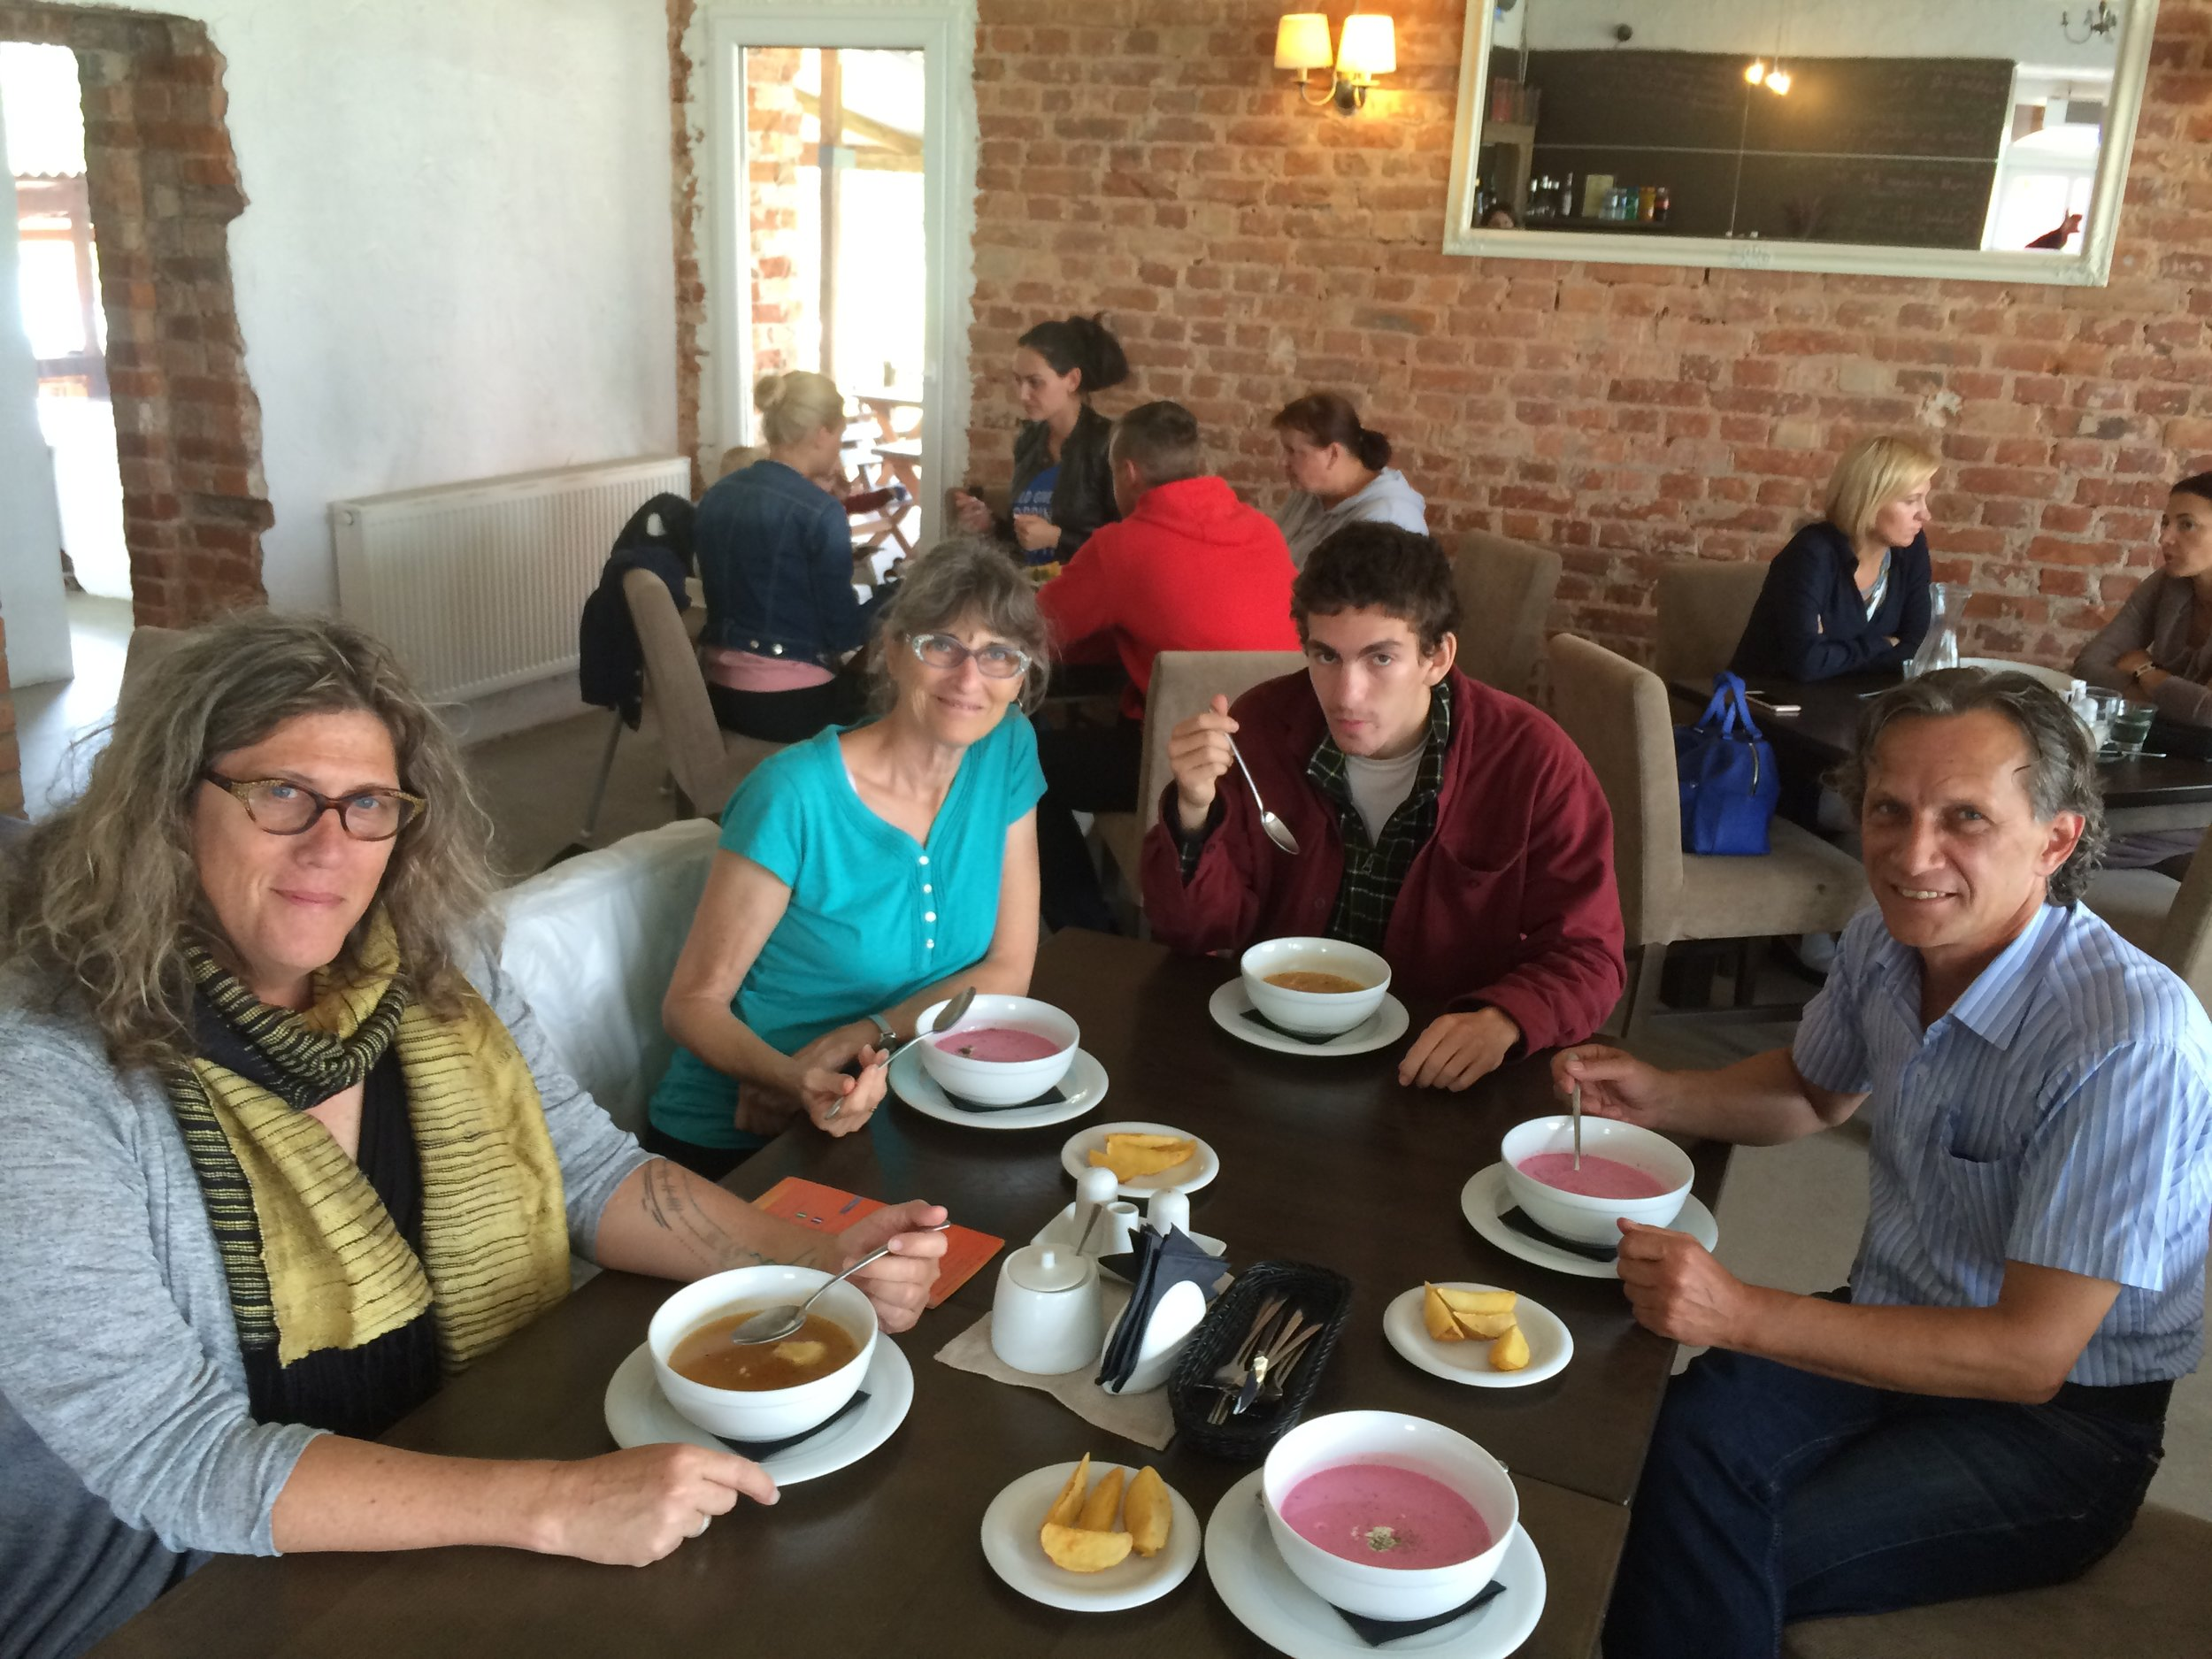 Eating lunch at Taurų Nuotykių Parkas. The borscht in Lithuania and Belarus was simply outstanding.